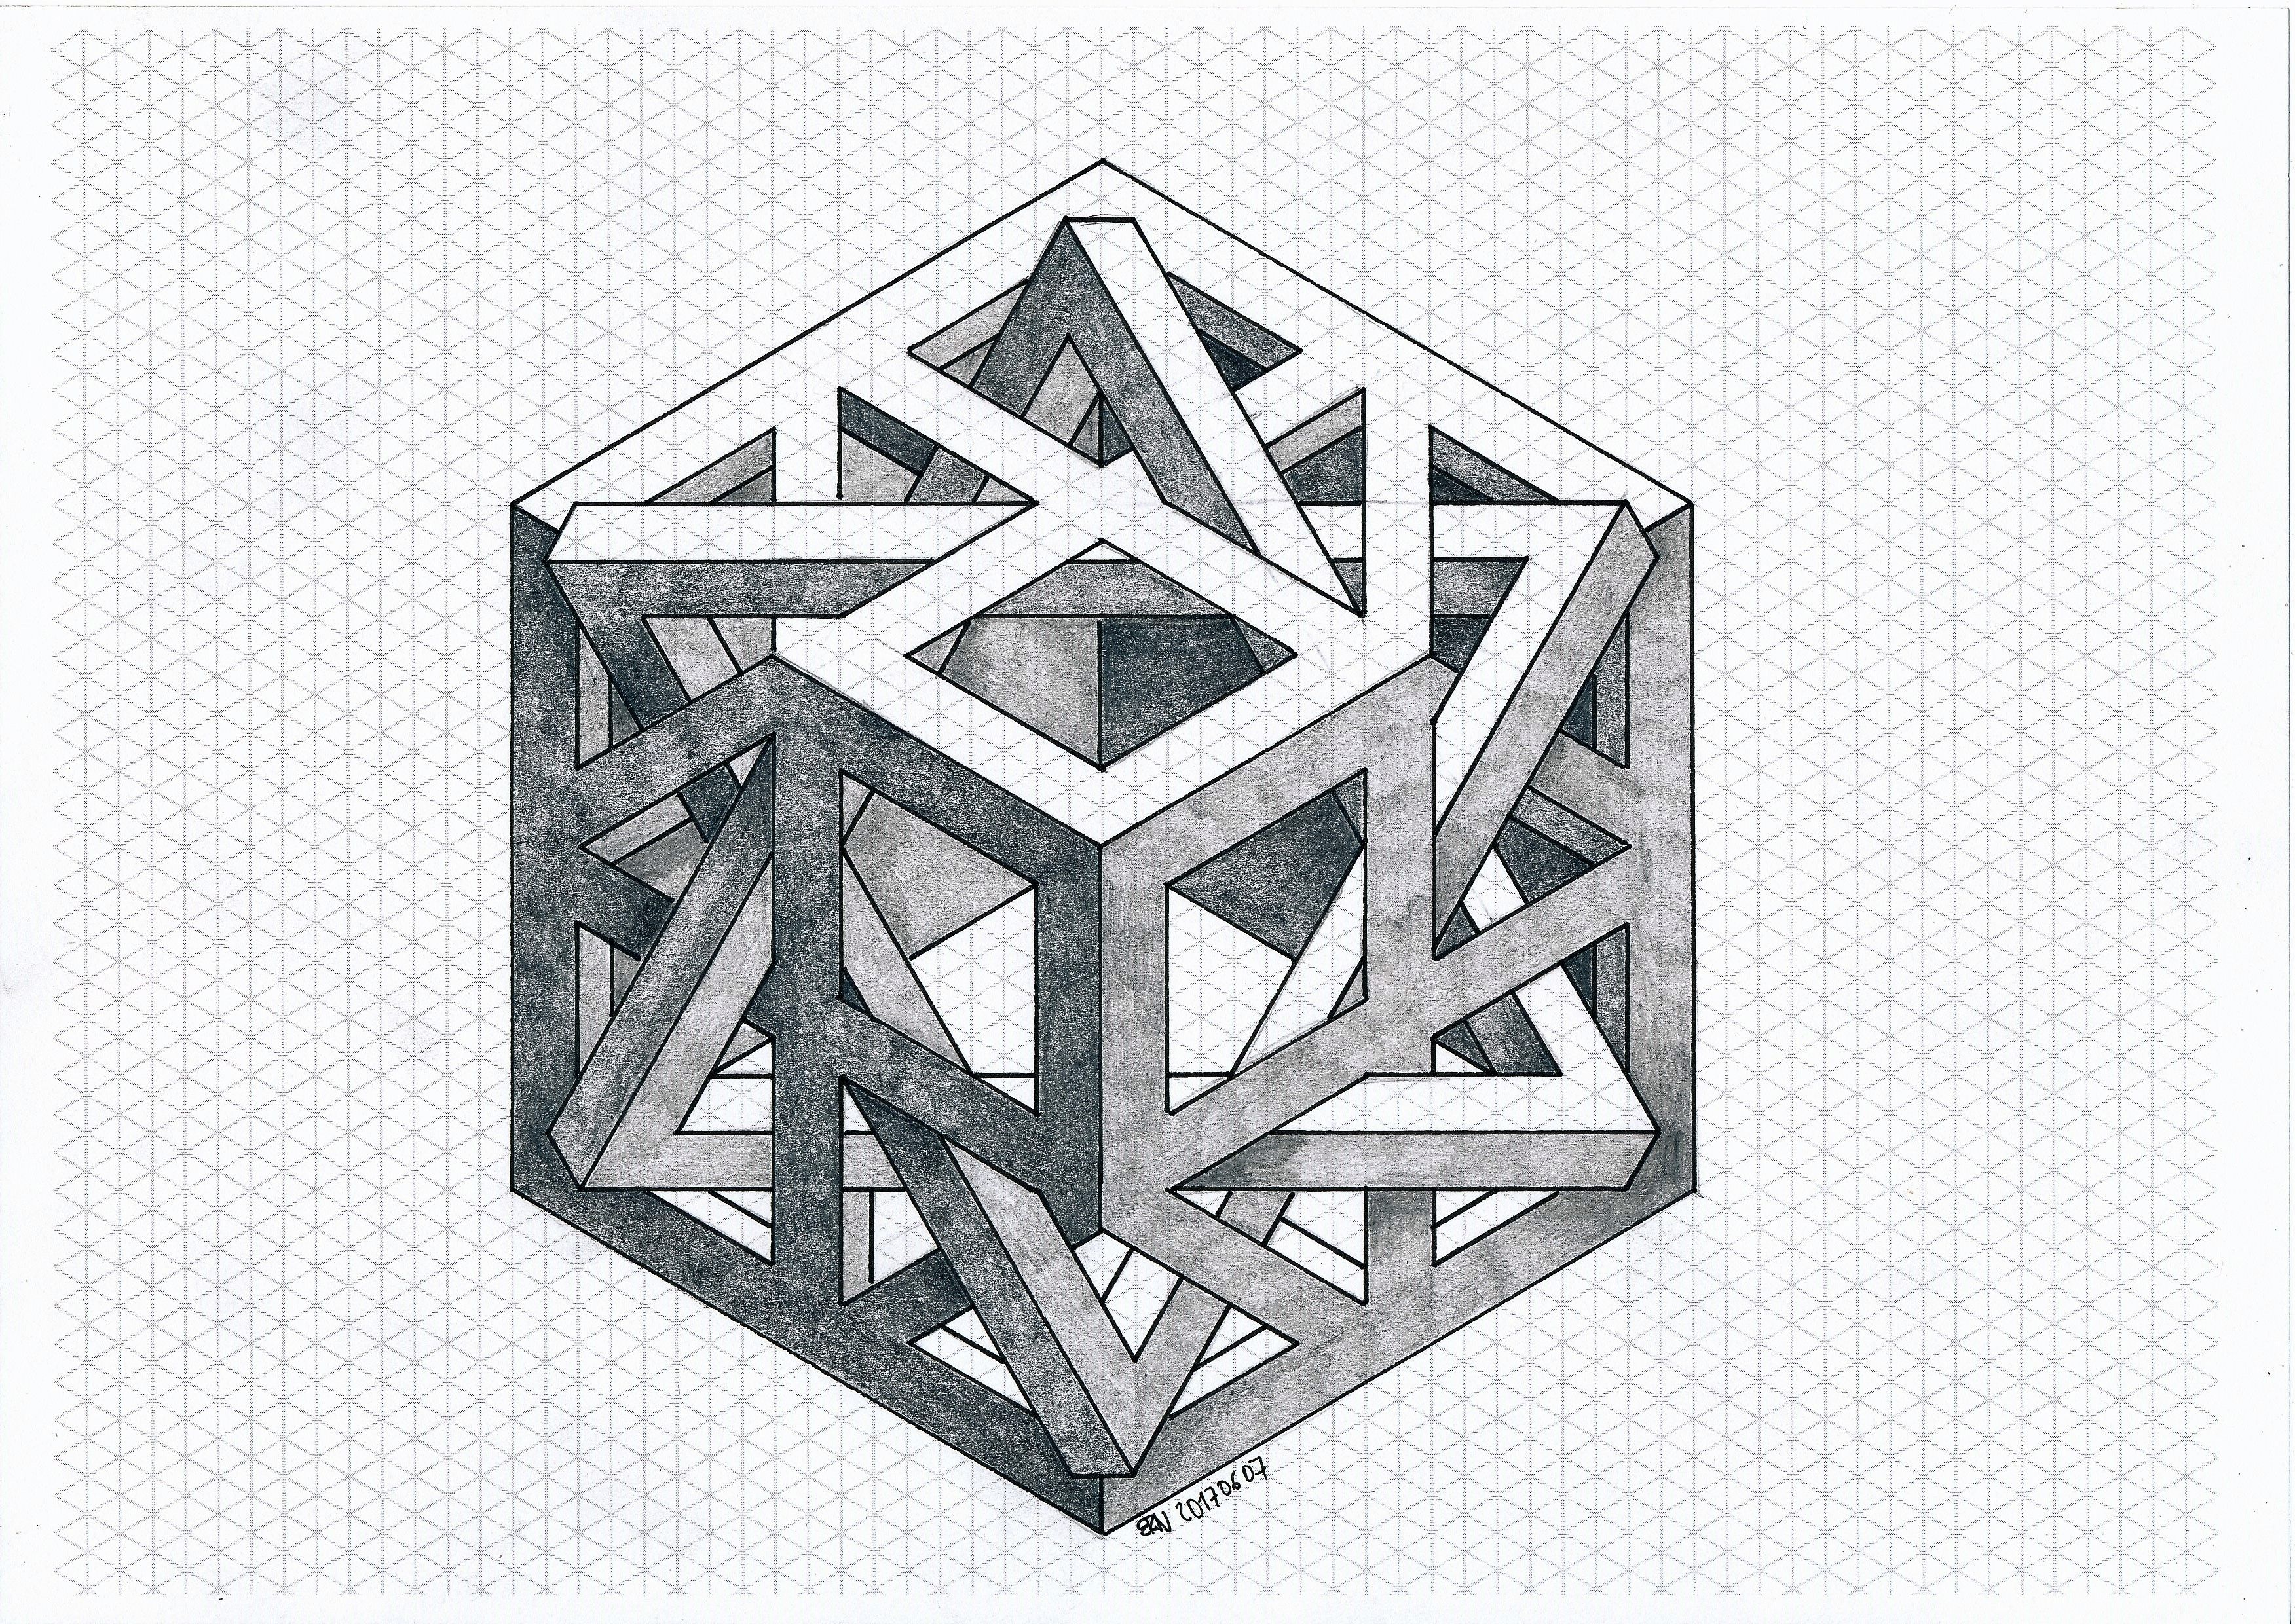 #impossible #isometric #penrose #triangle #mathart #